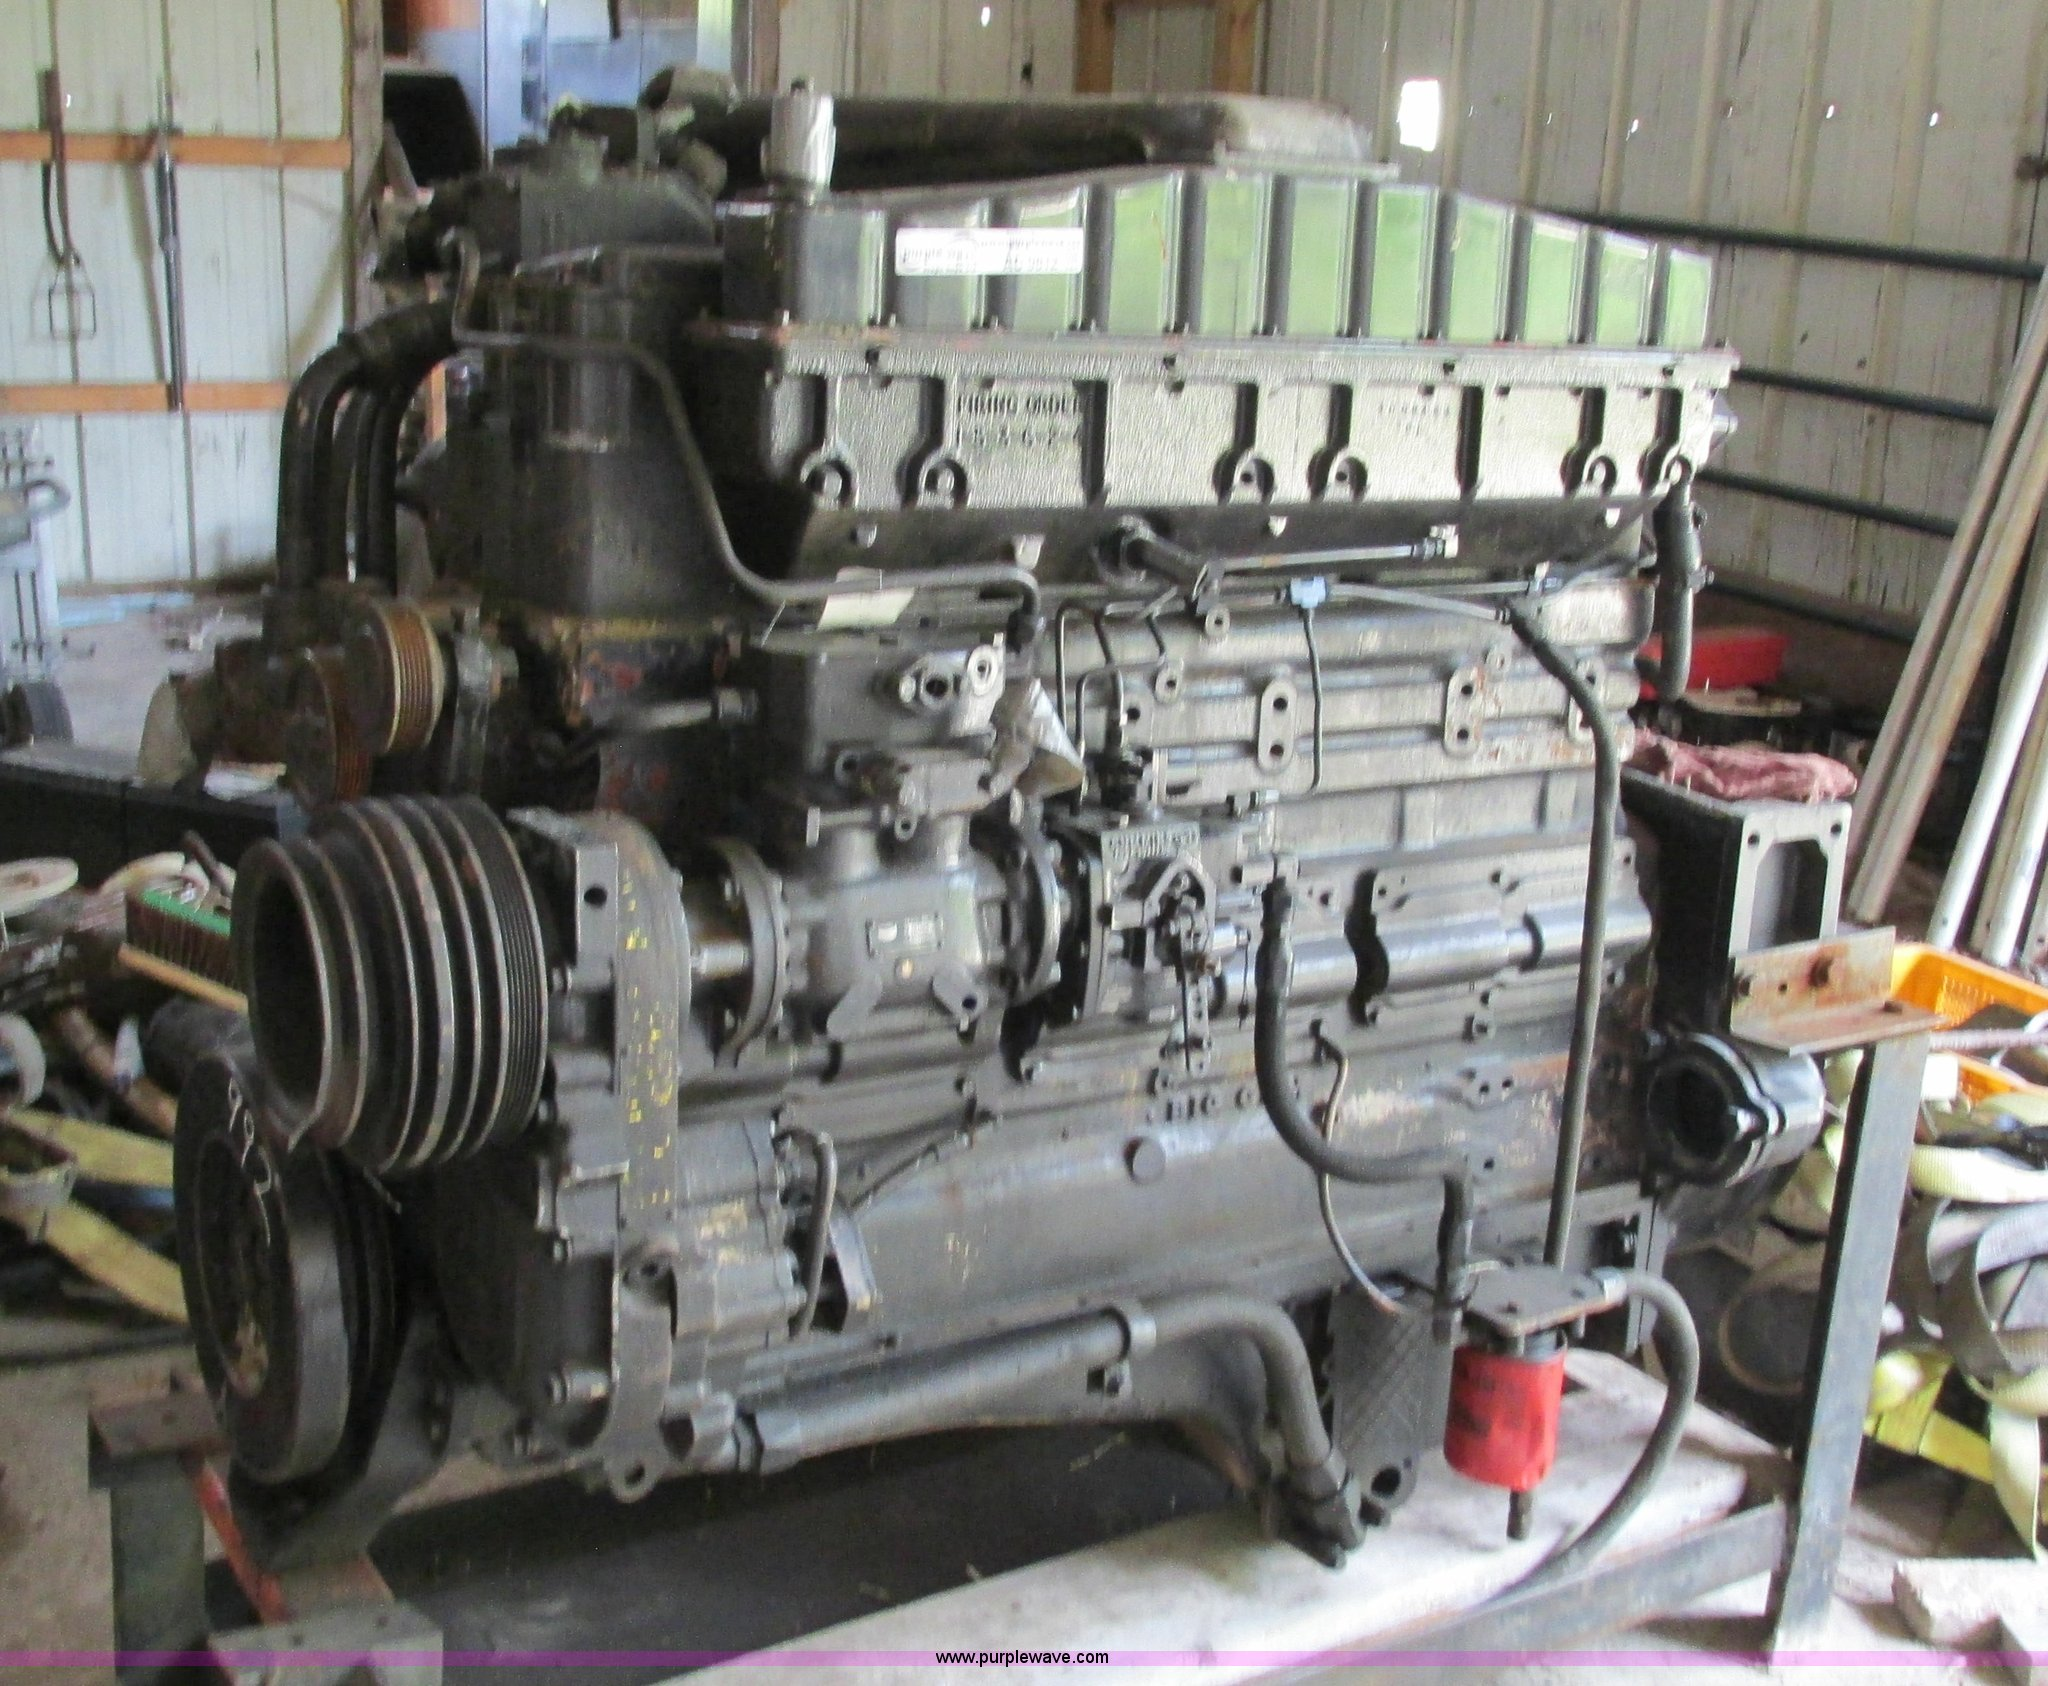 Cummins 400 C I D  big cam six cylinder diesel engine | Item